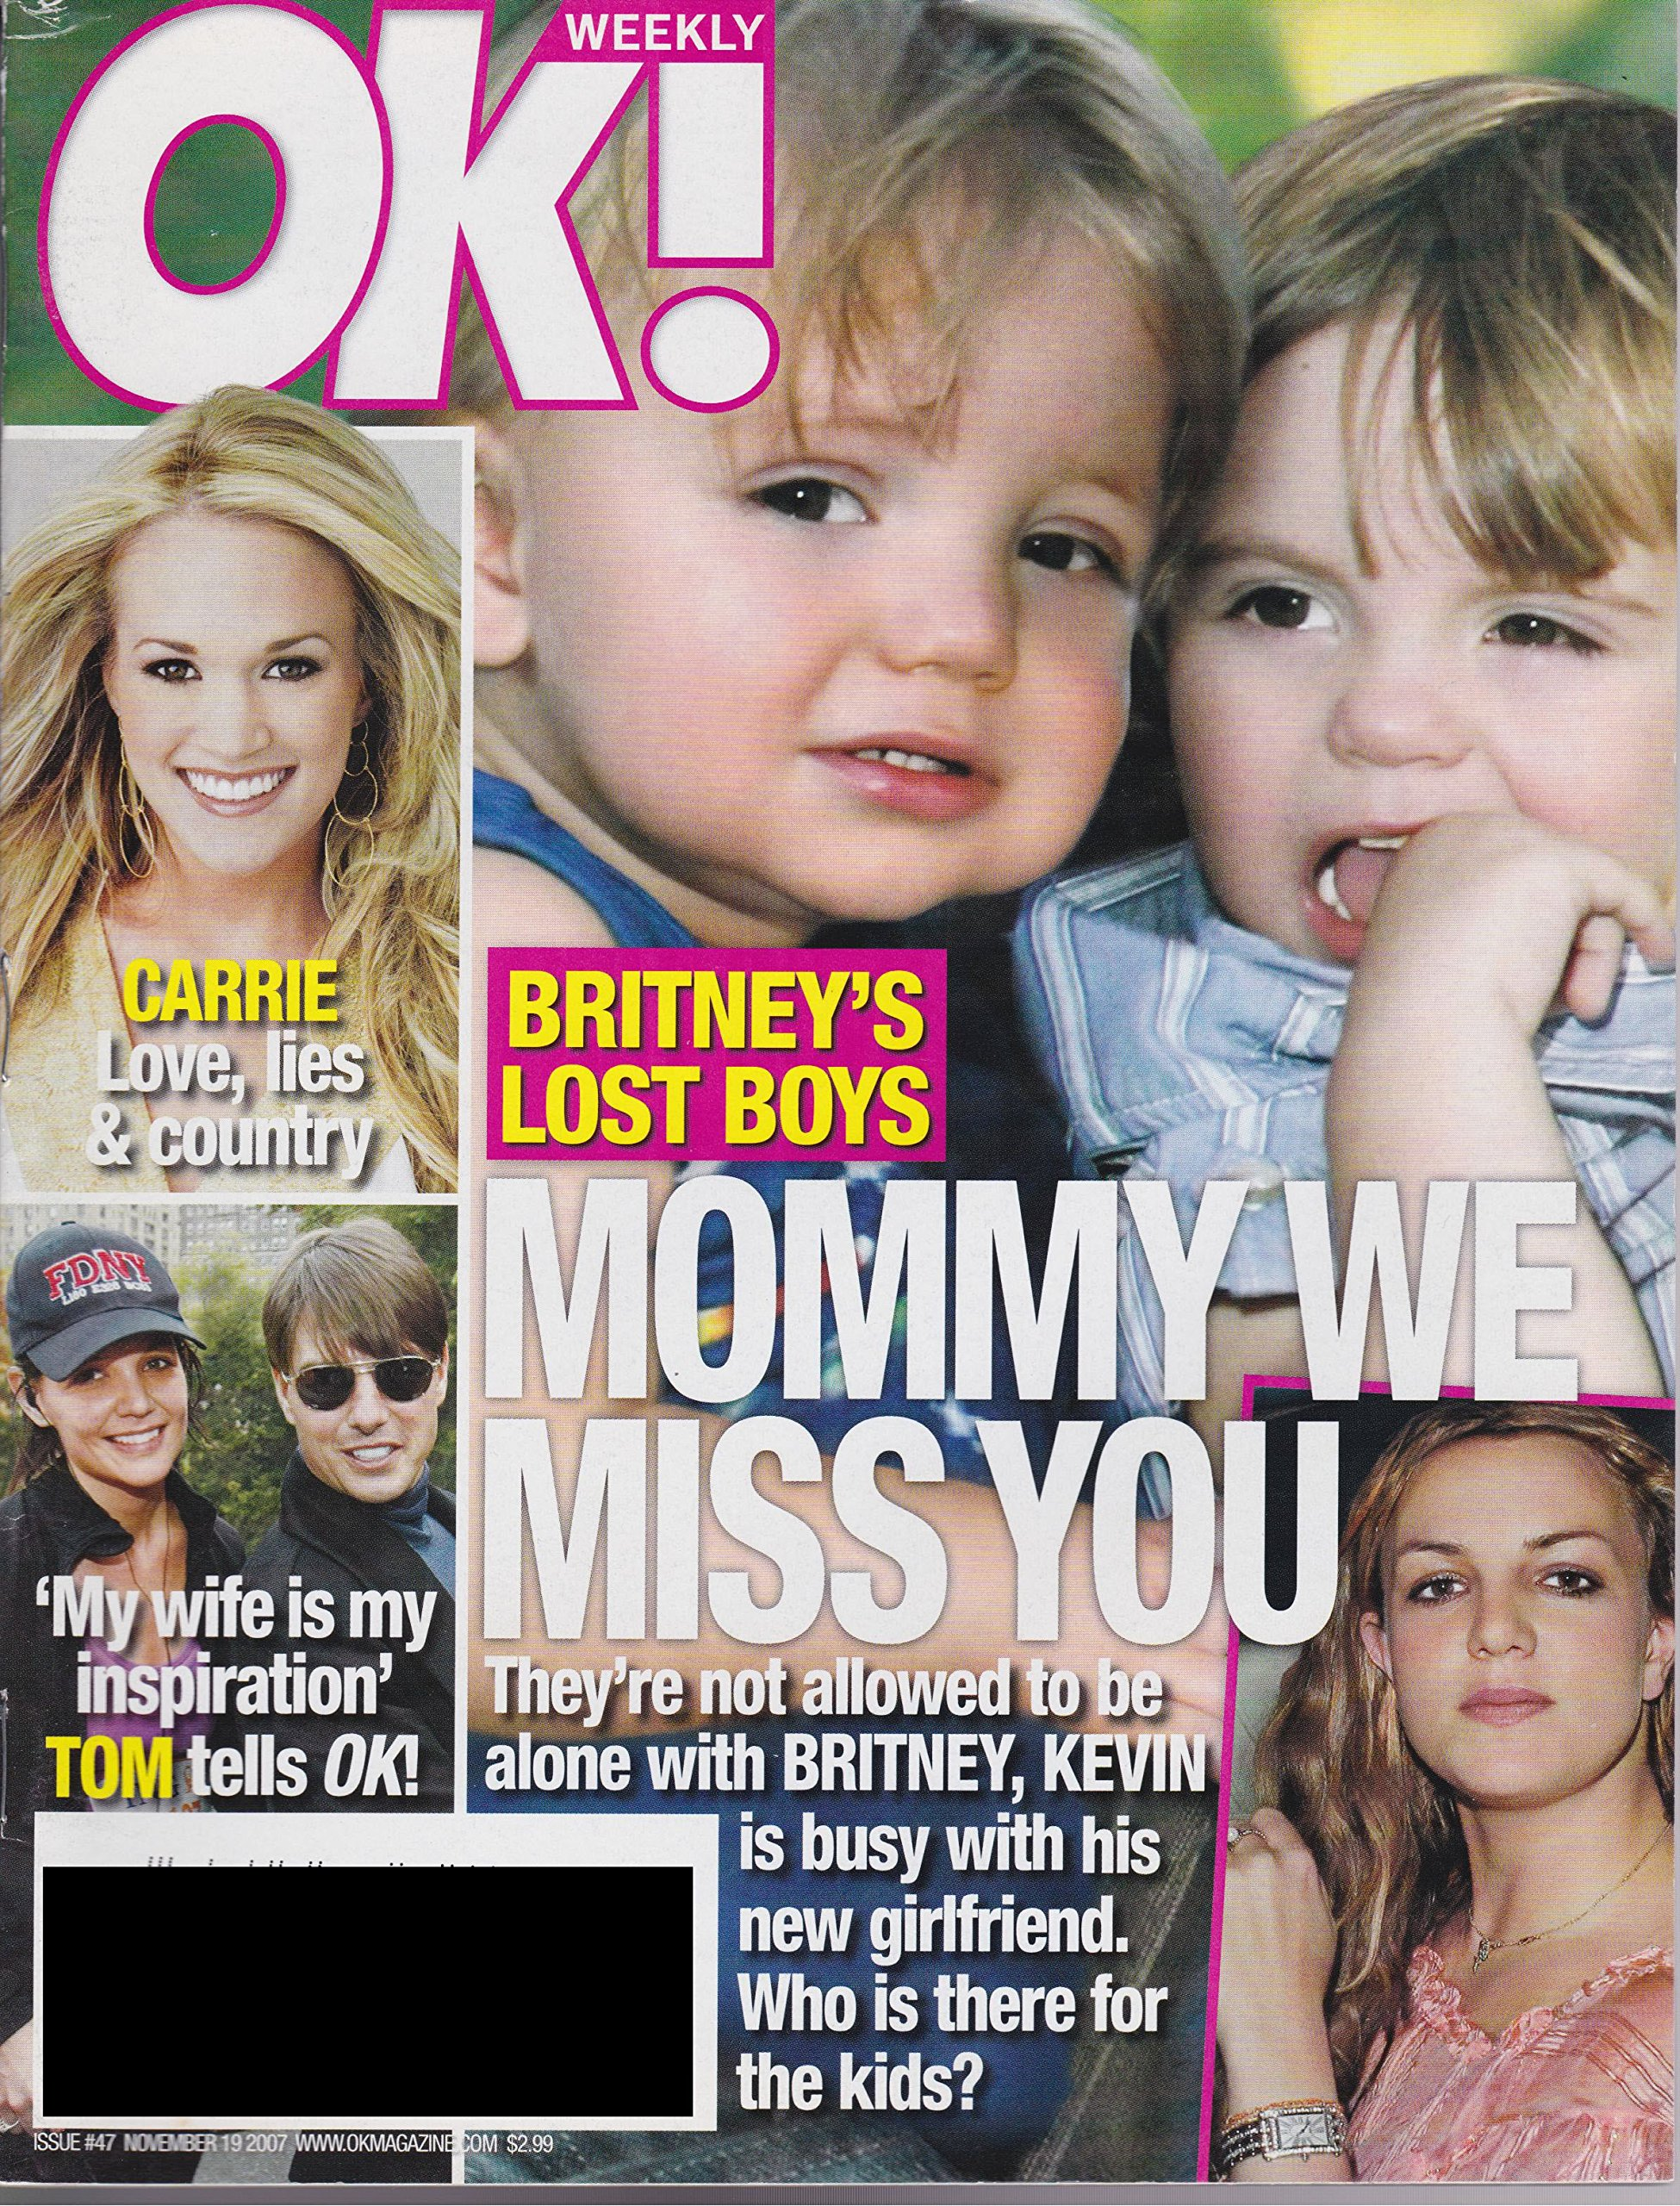 OK Weekly Magazine Back Issue - November 19, 2007 - features Britney Spears  kids / Kevin Federline on Cover: Amazon.com: Books